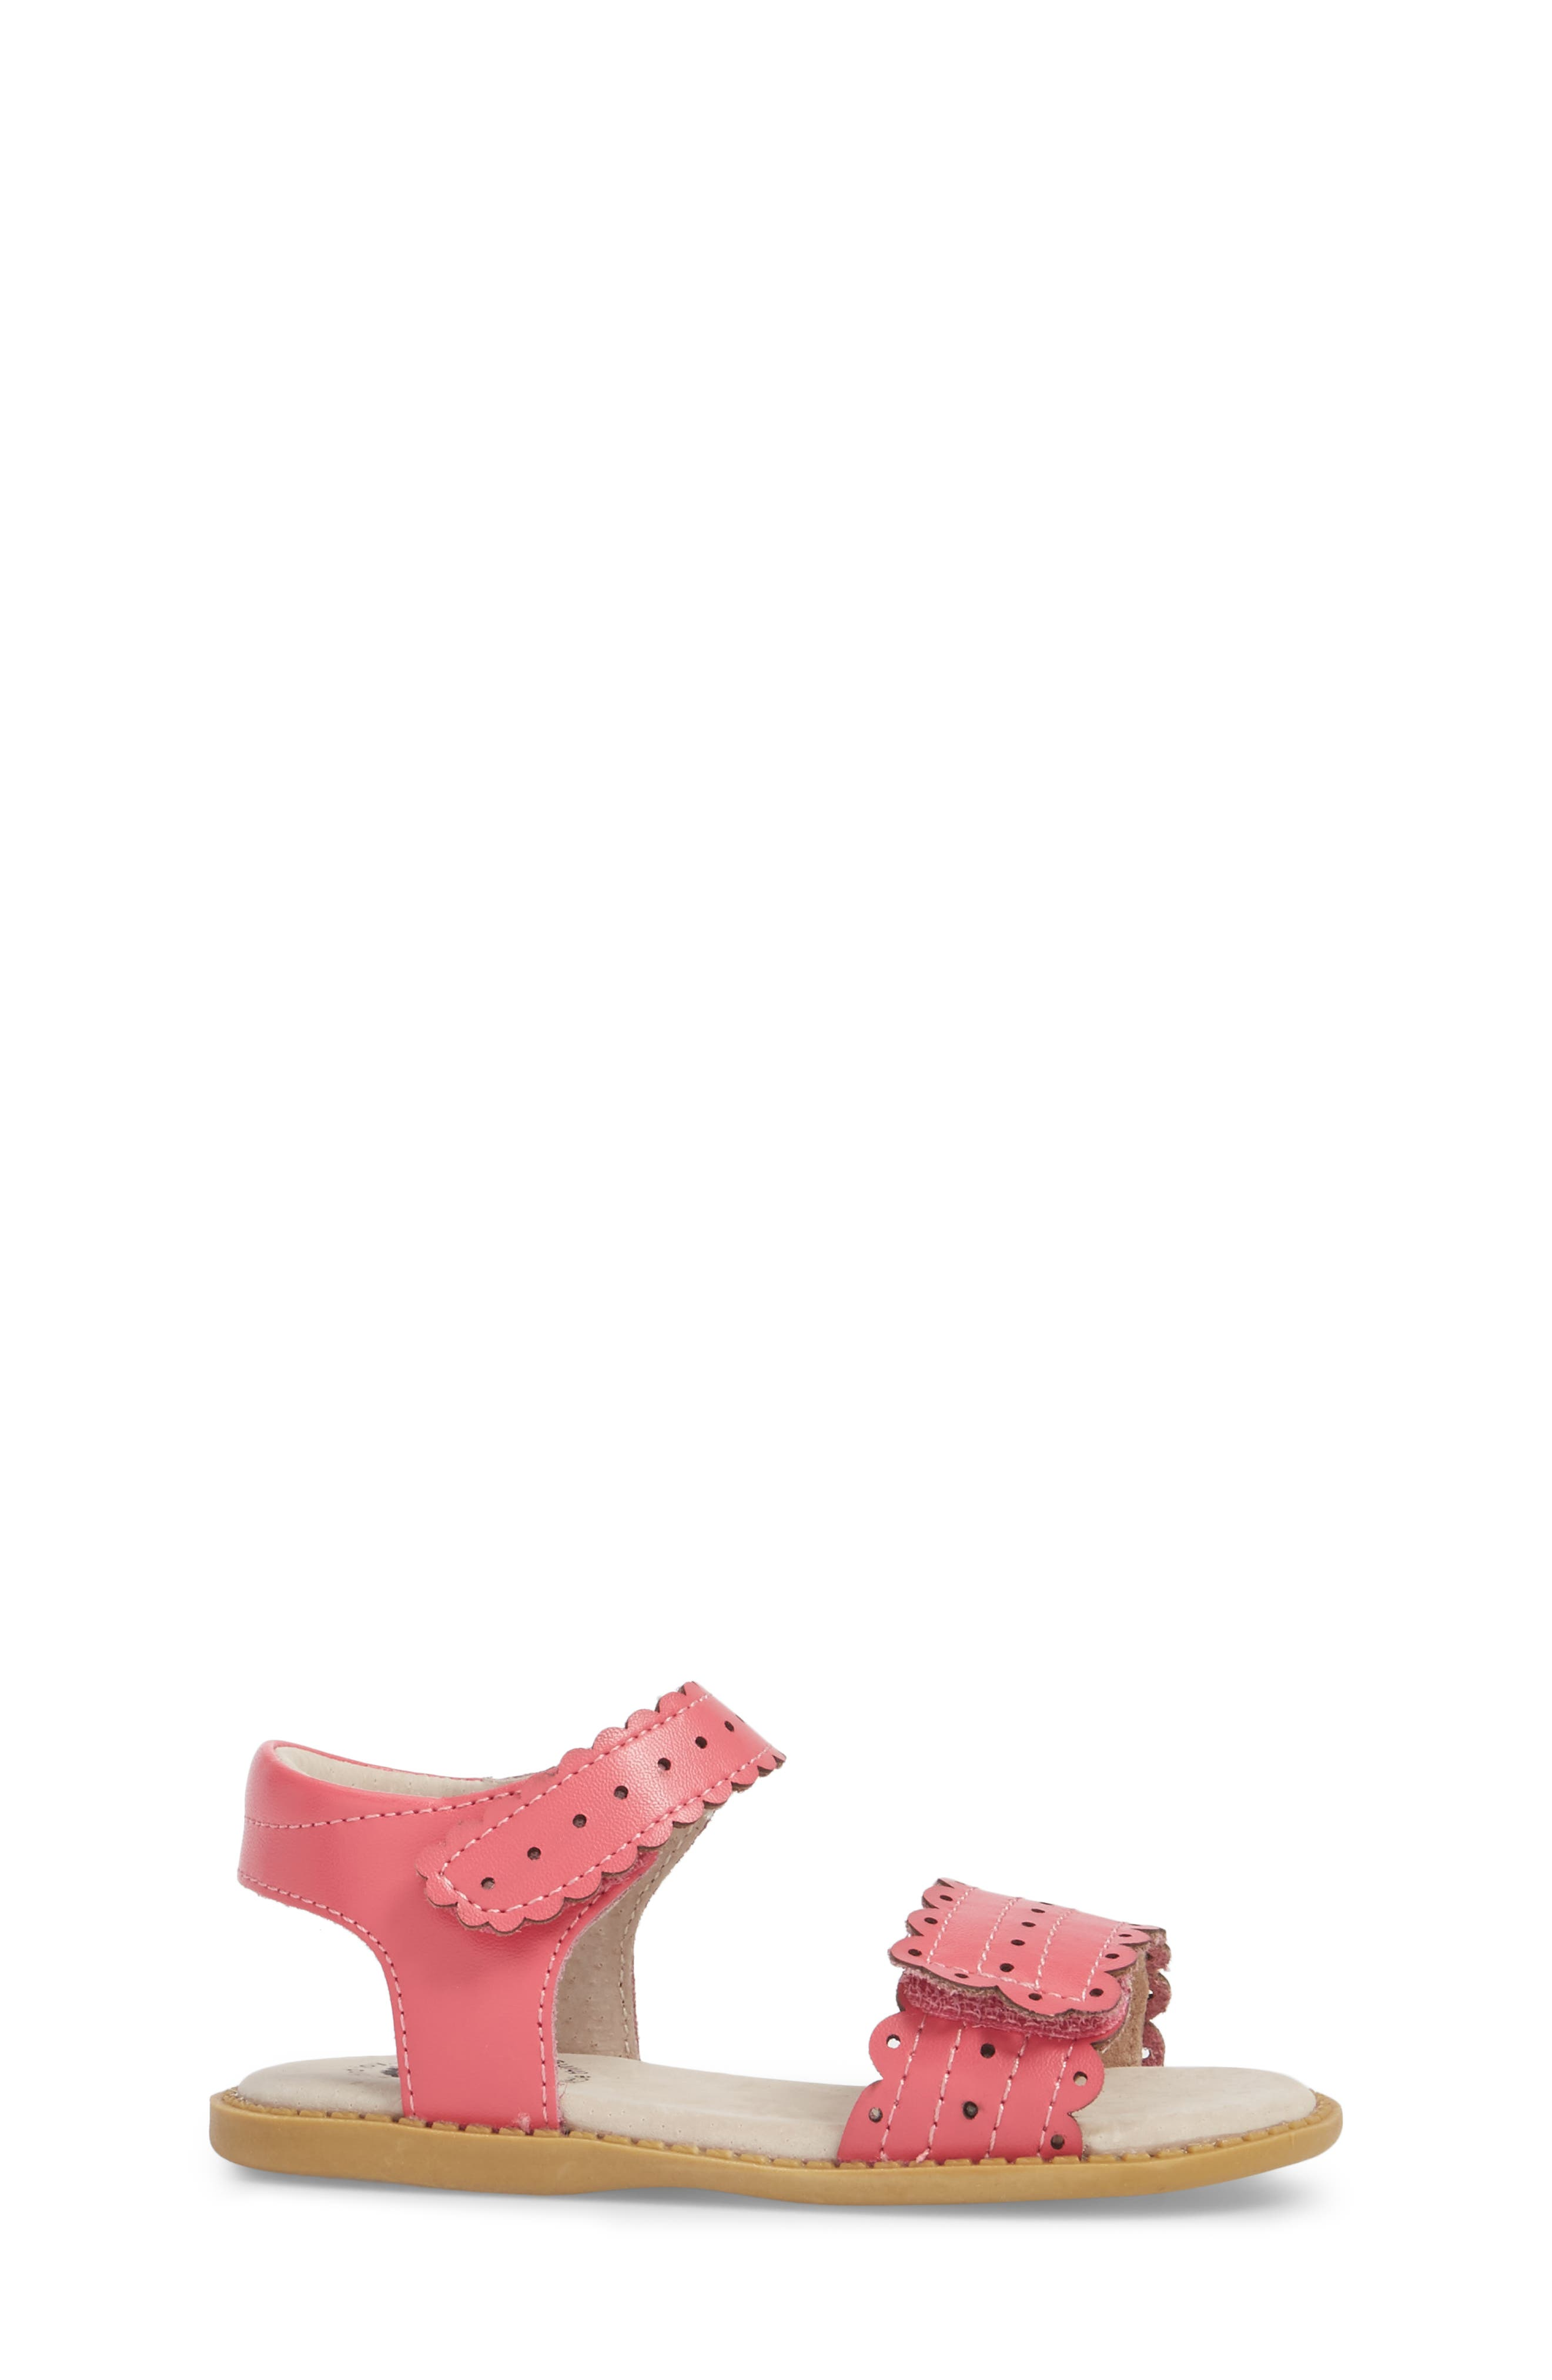 Posey Sandal,                             Alternate thumbnail 3, color,                             ROSY PINK